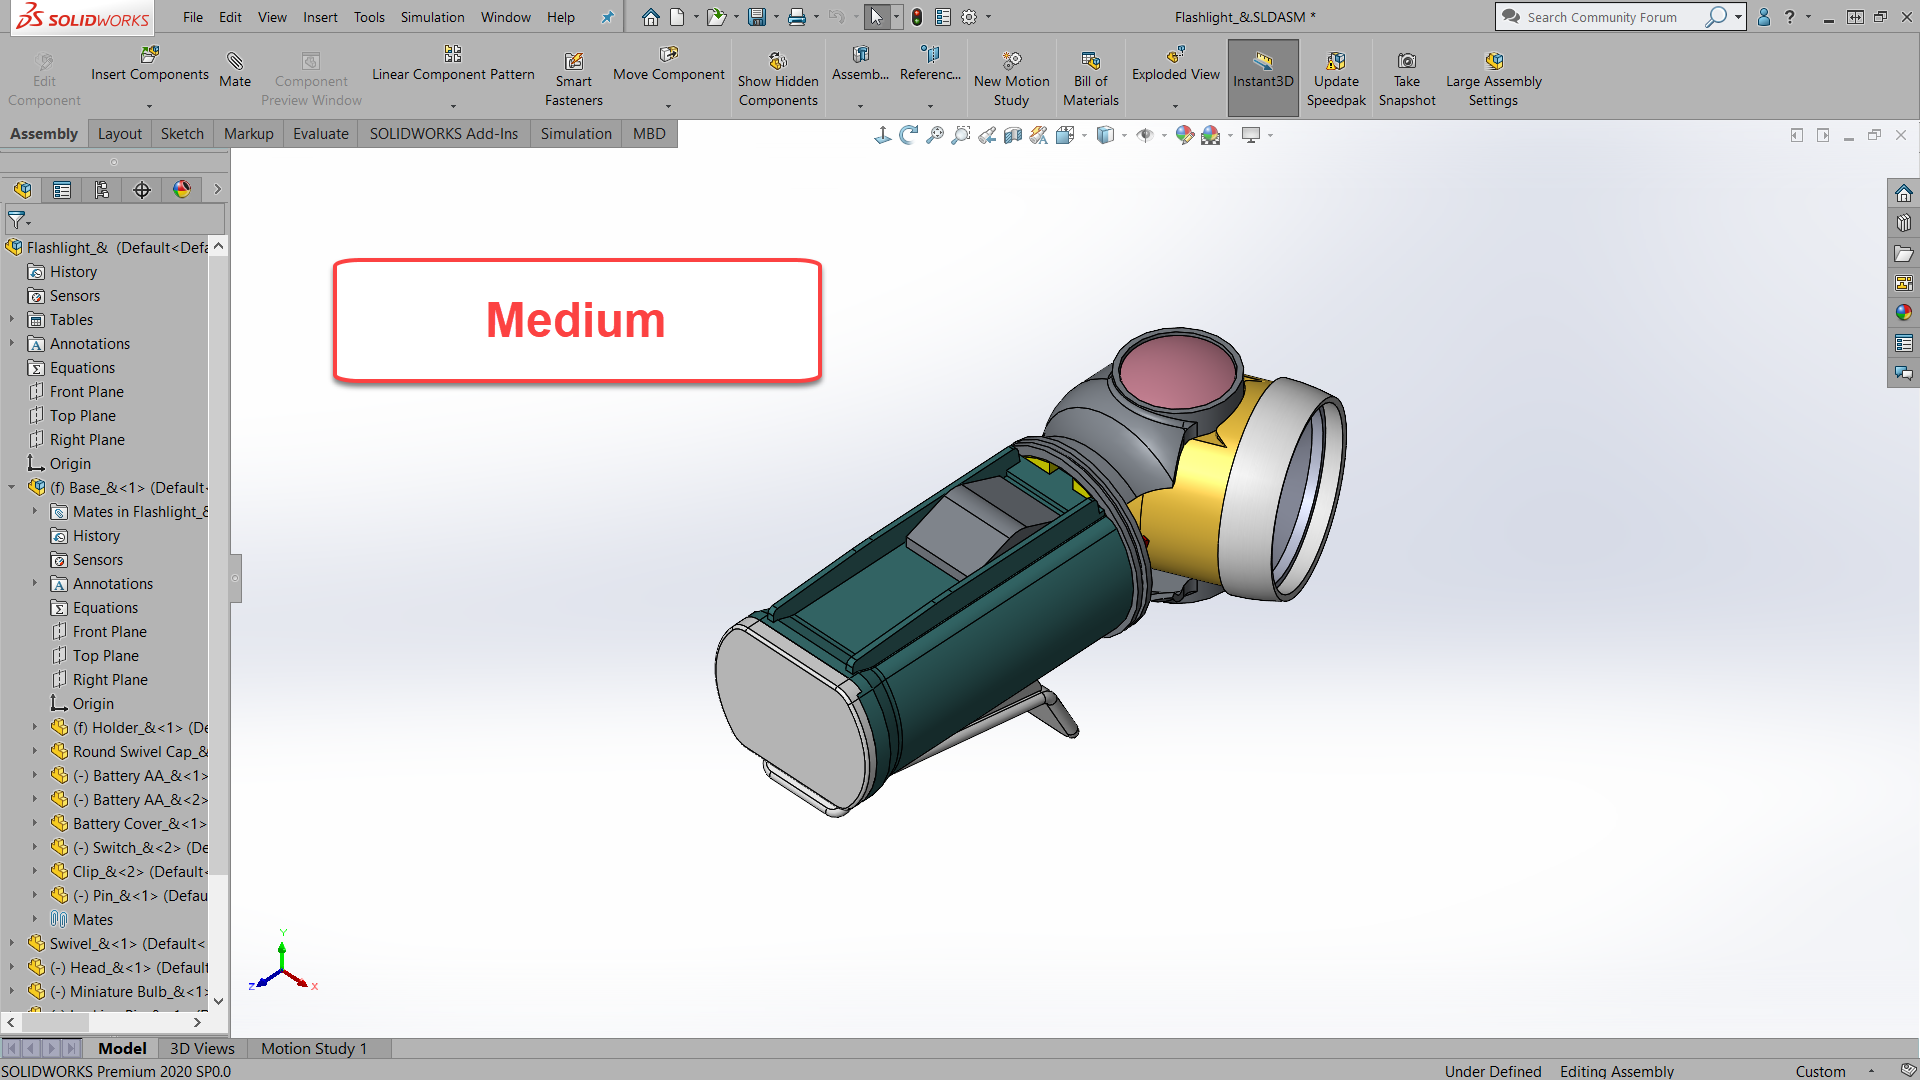 SOLIDWORKS Medium Background